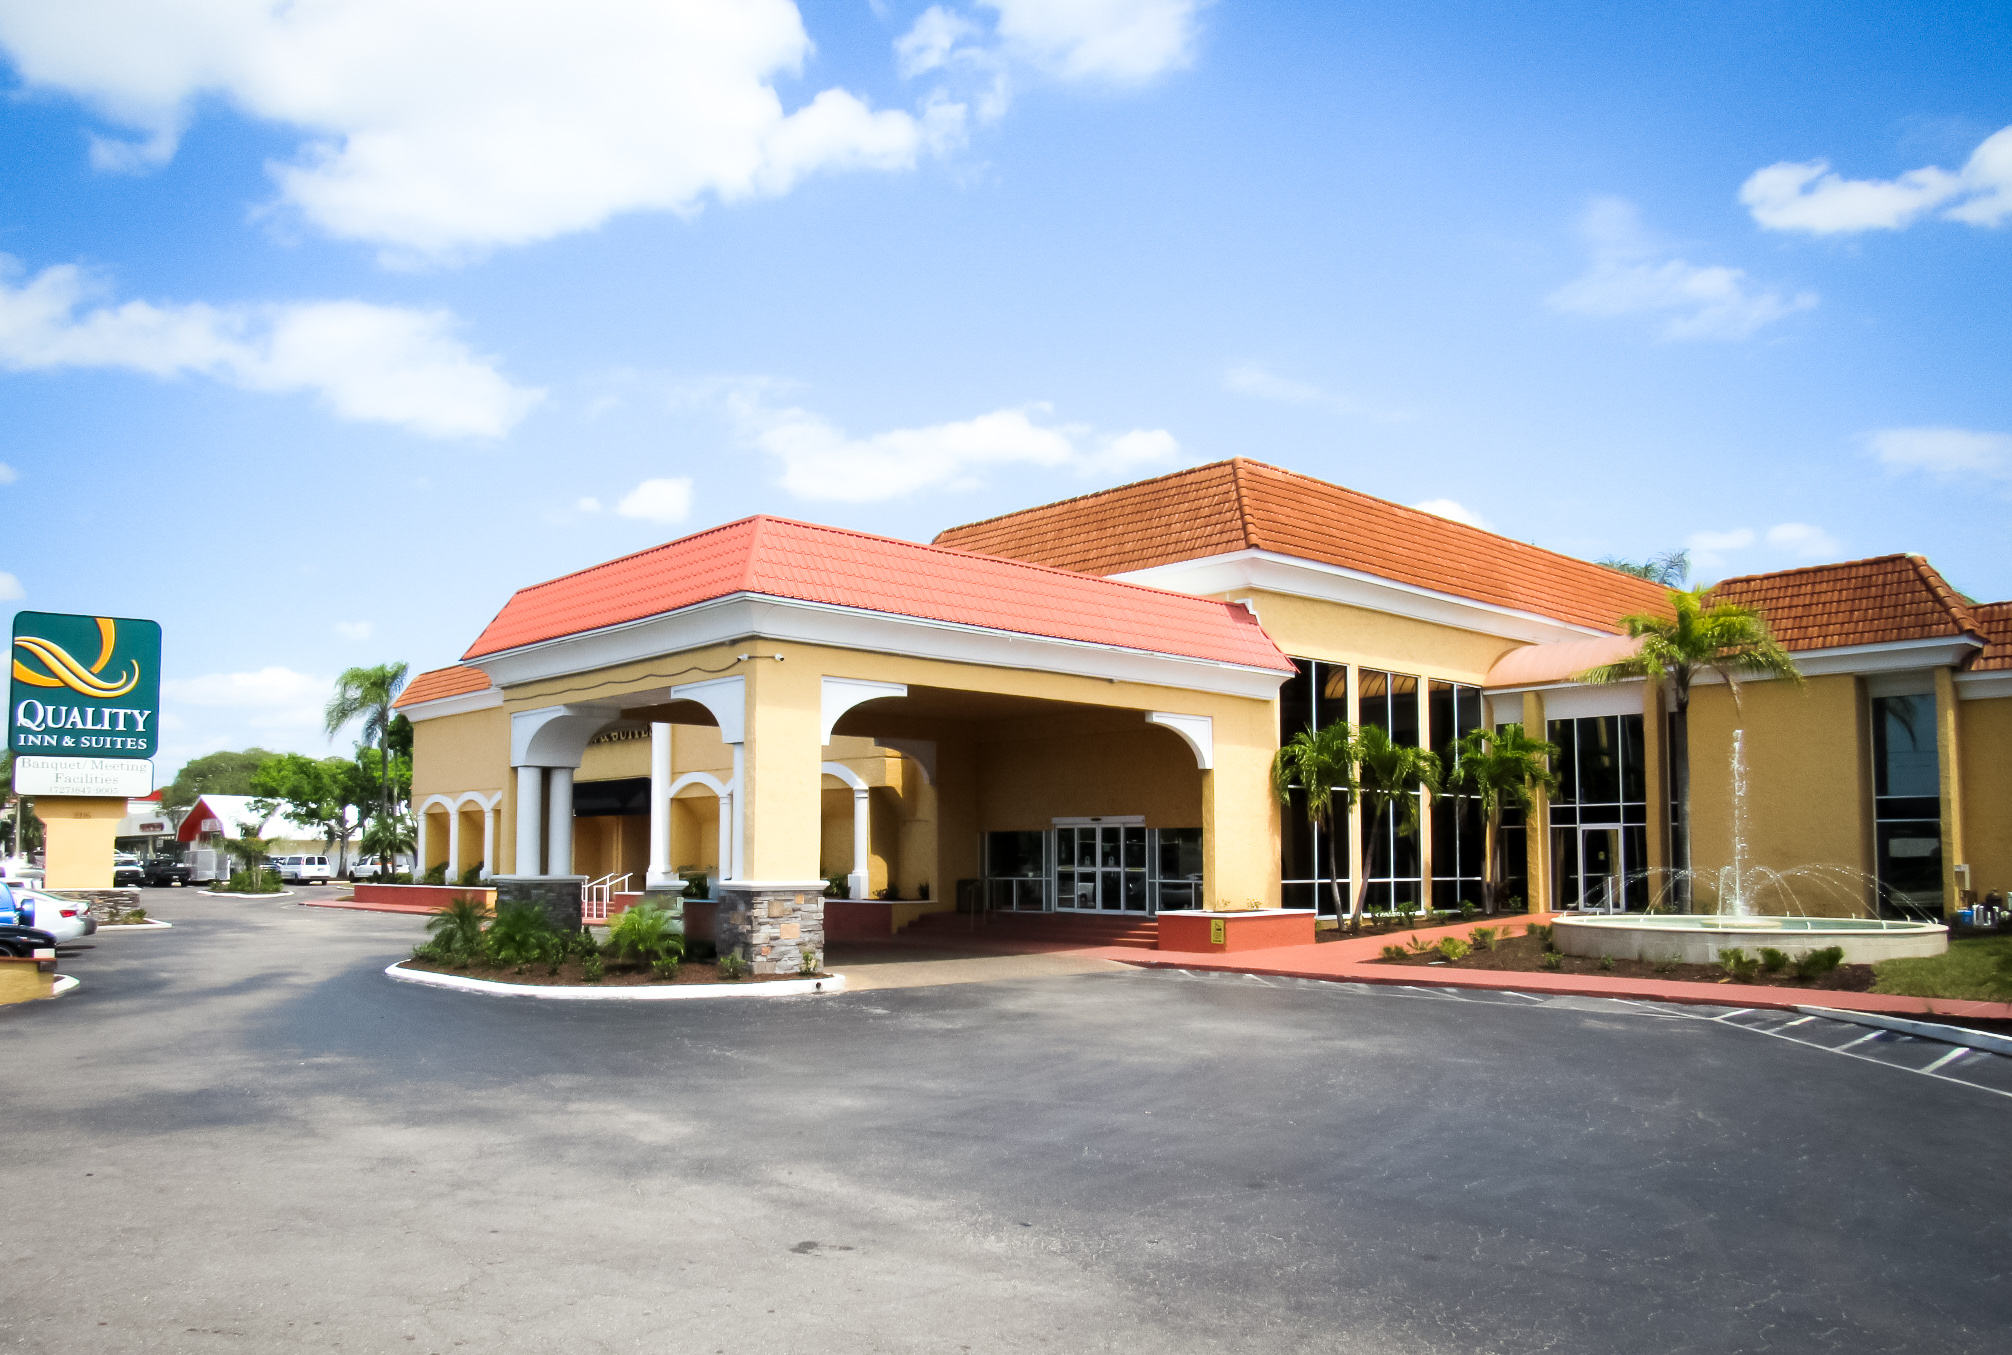 Quality Inn & Suites - New Port Richey